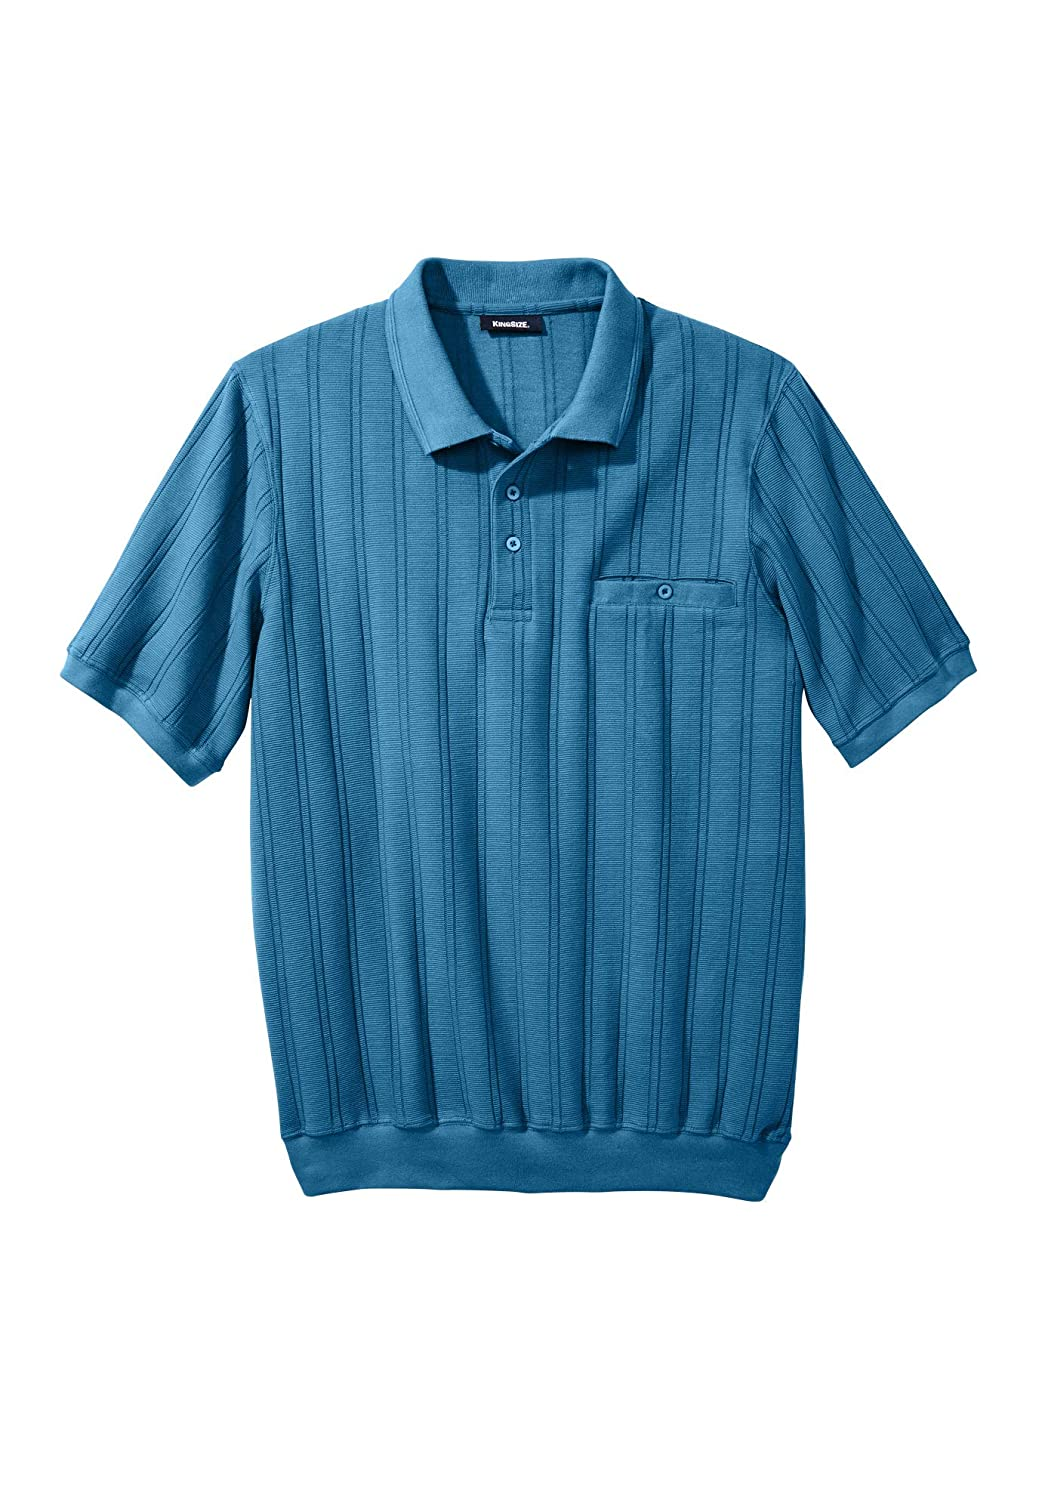 Mens Vintage Shirts – Casual, Dress, T-shirts, Polos  Big & Tall Banded Bottom Textured Polo Shirt KingSize Mens $43.79 AT vintagedancer.com